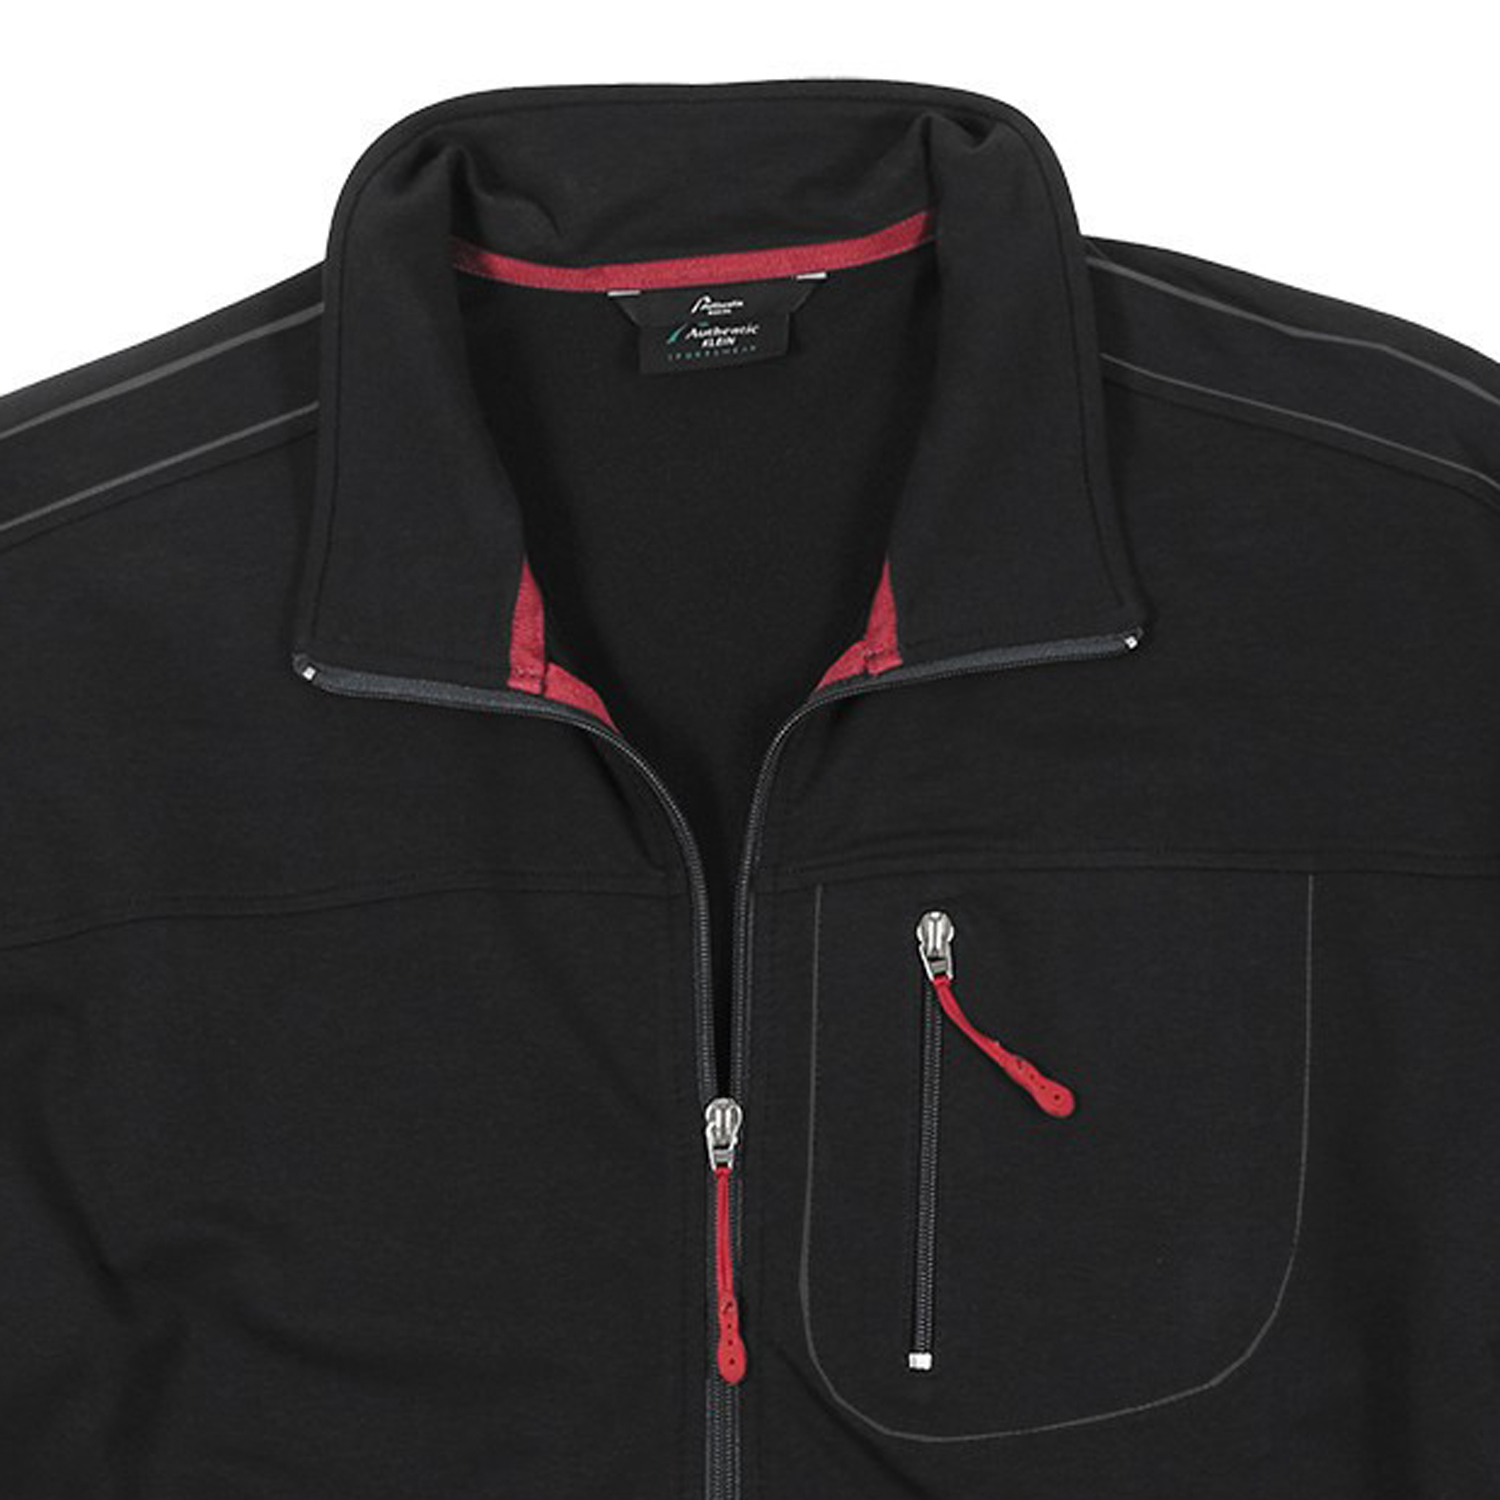 Detail Image to Sports and leisure jacket in black, plus sizes by AUTHENTIC KLEIN